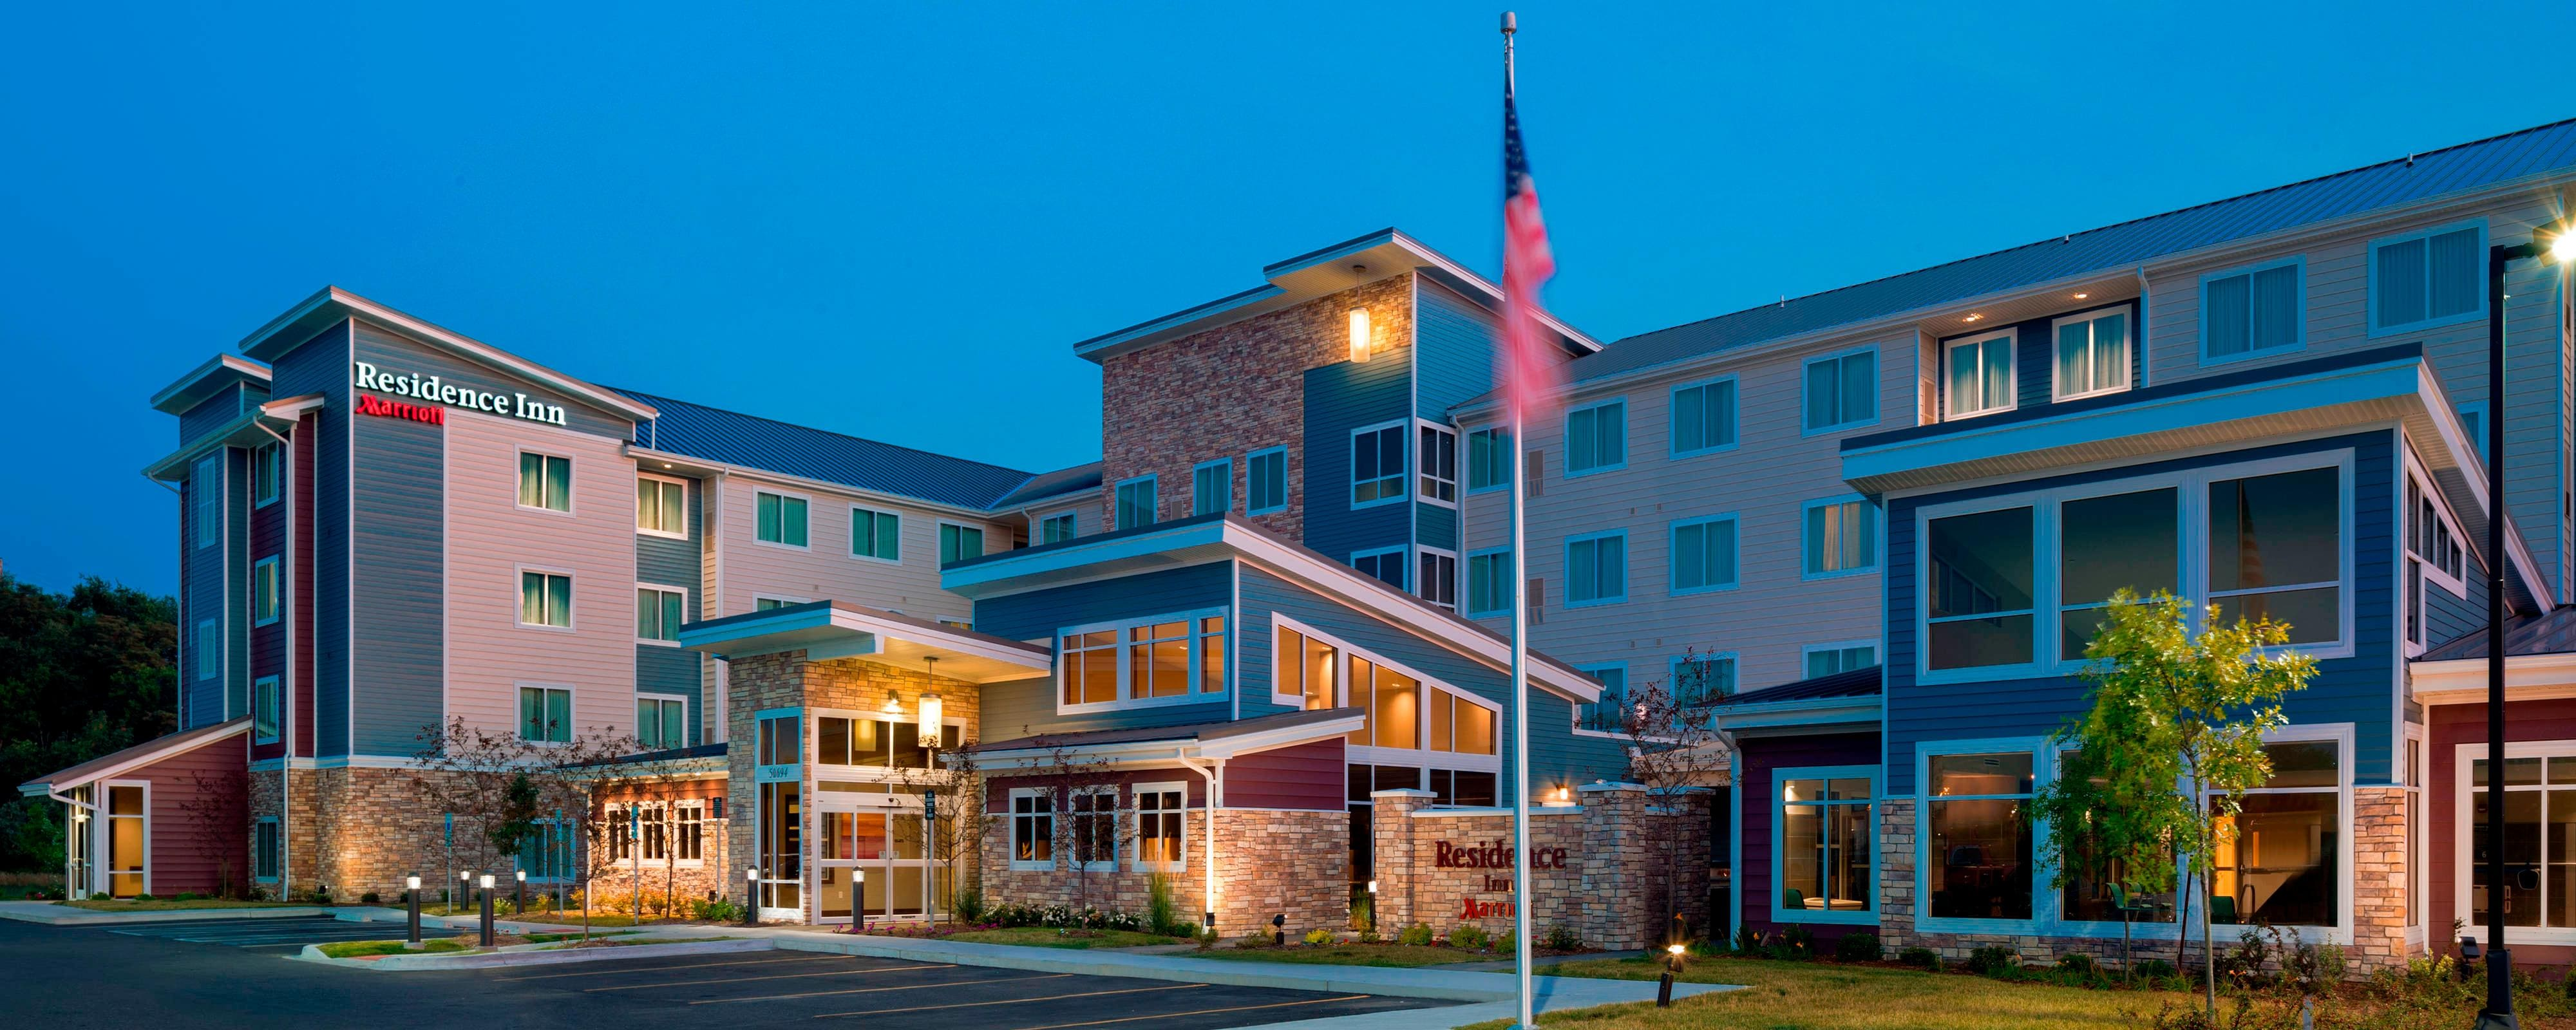 Hotels In St Clairsville Ohio